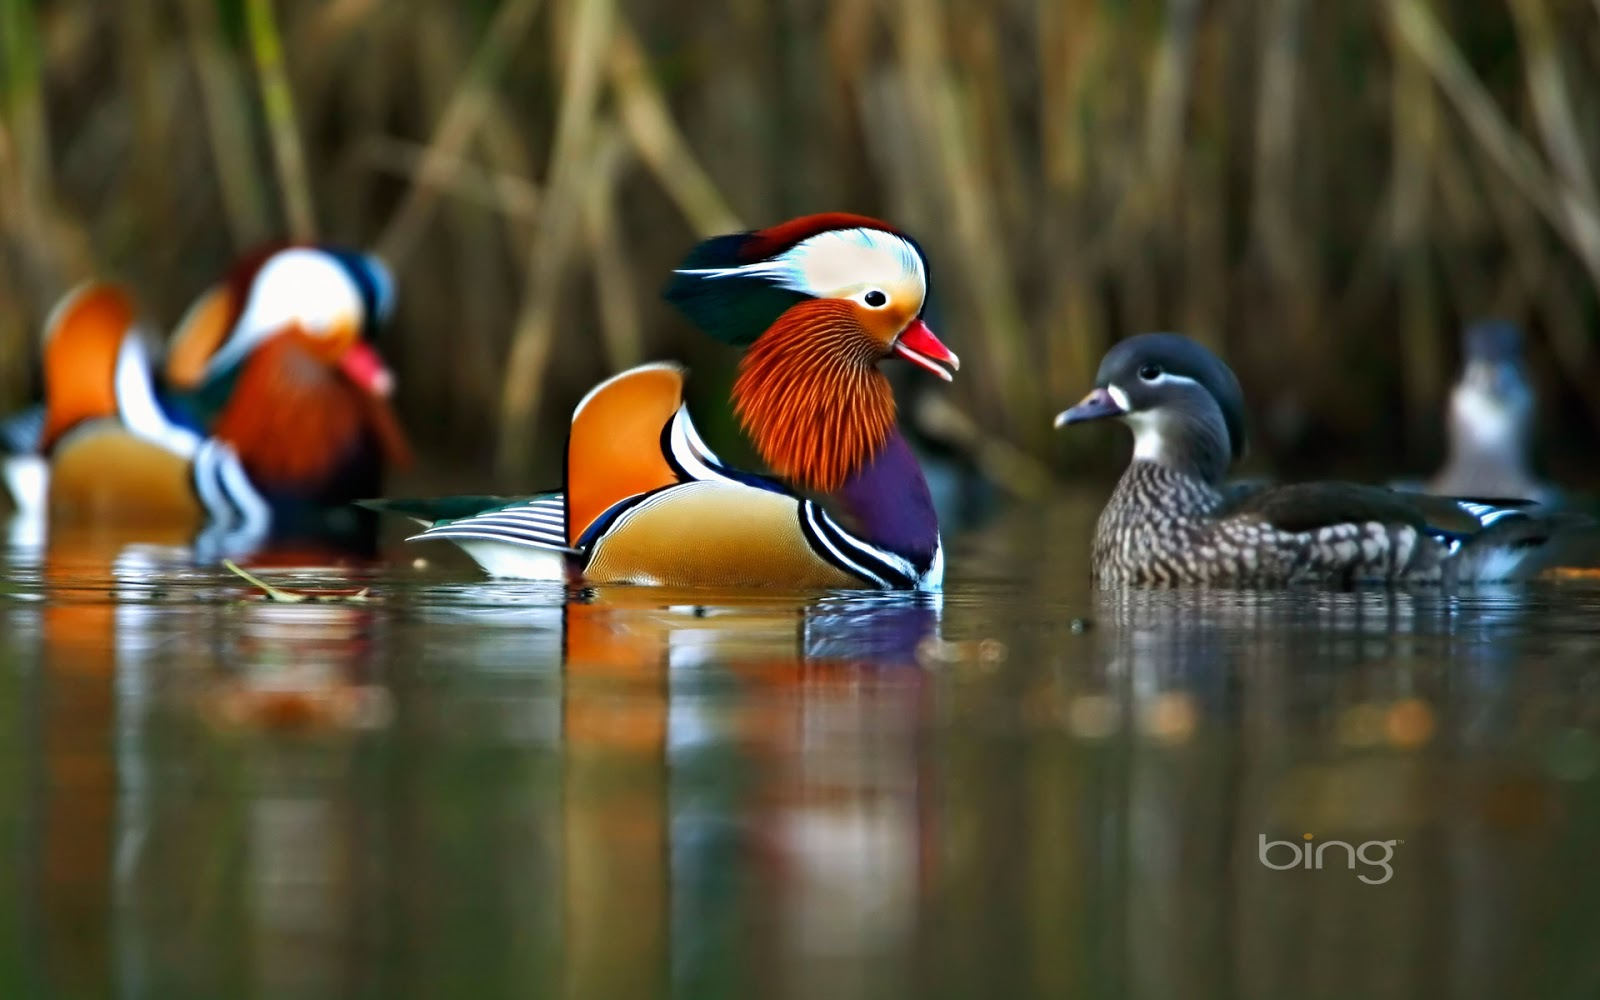 Bing Wallpapers [Daily]: March 2013